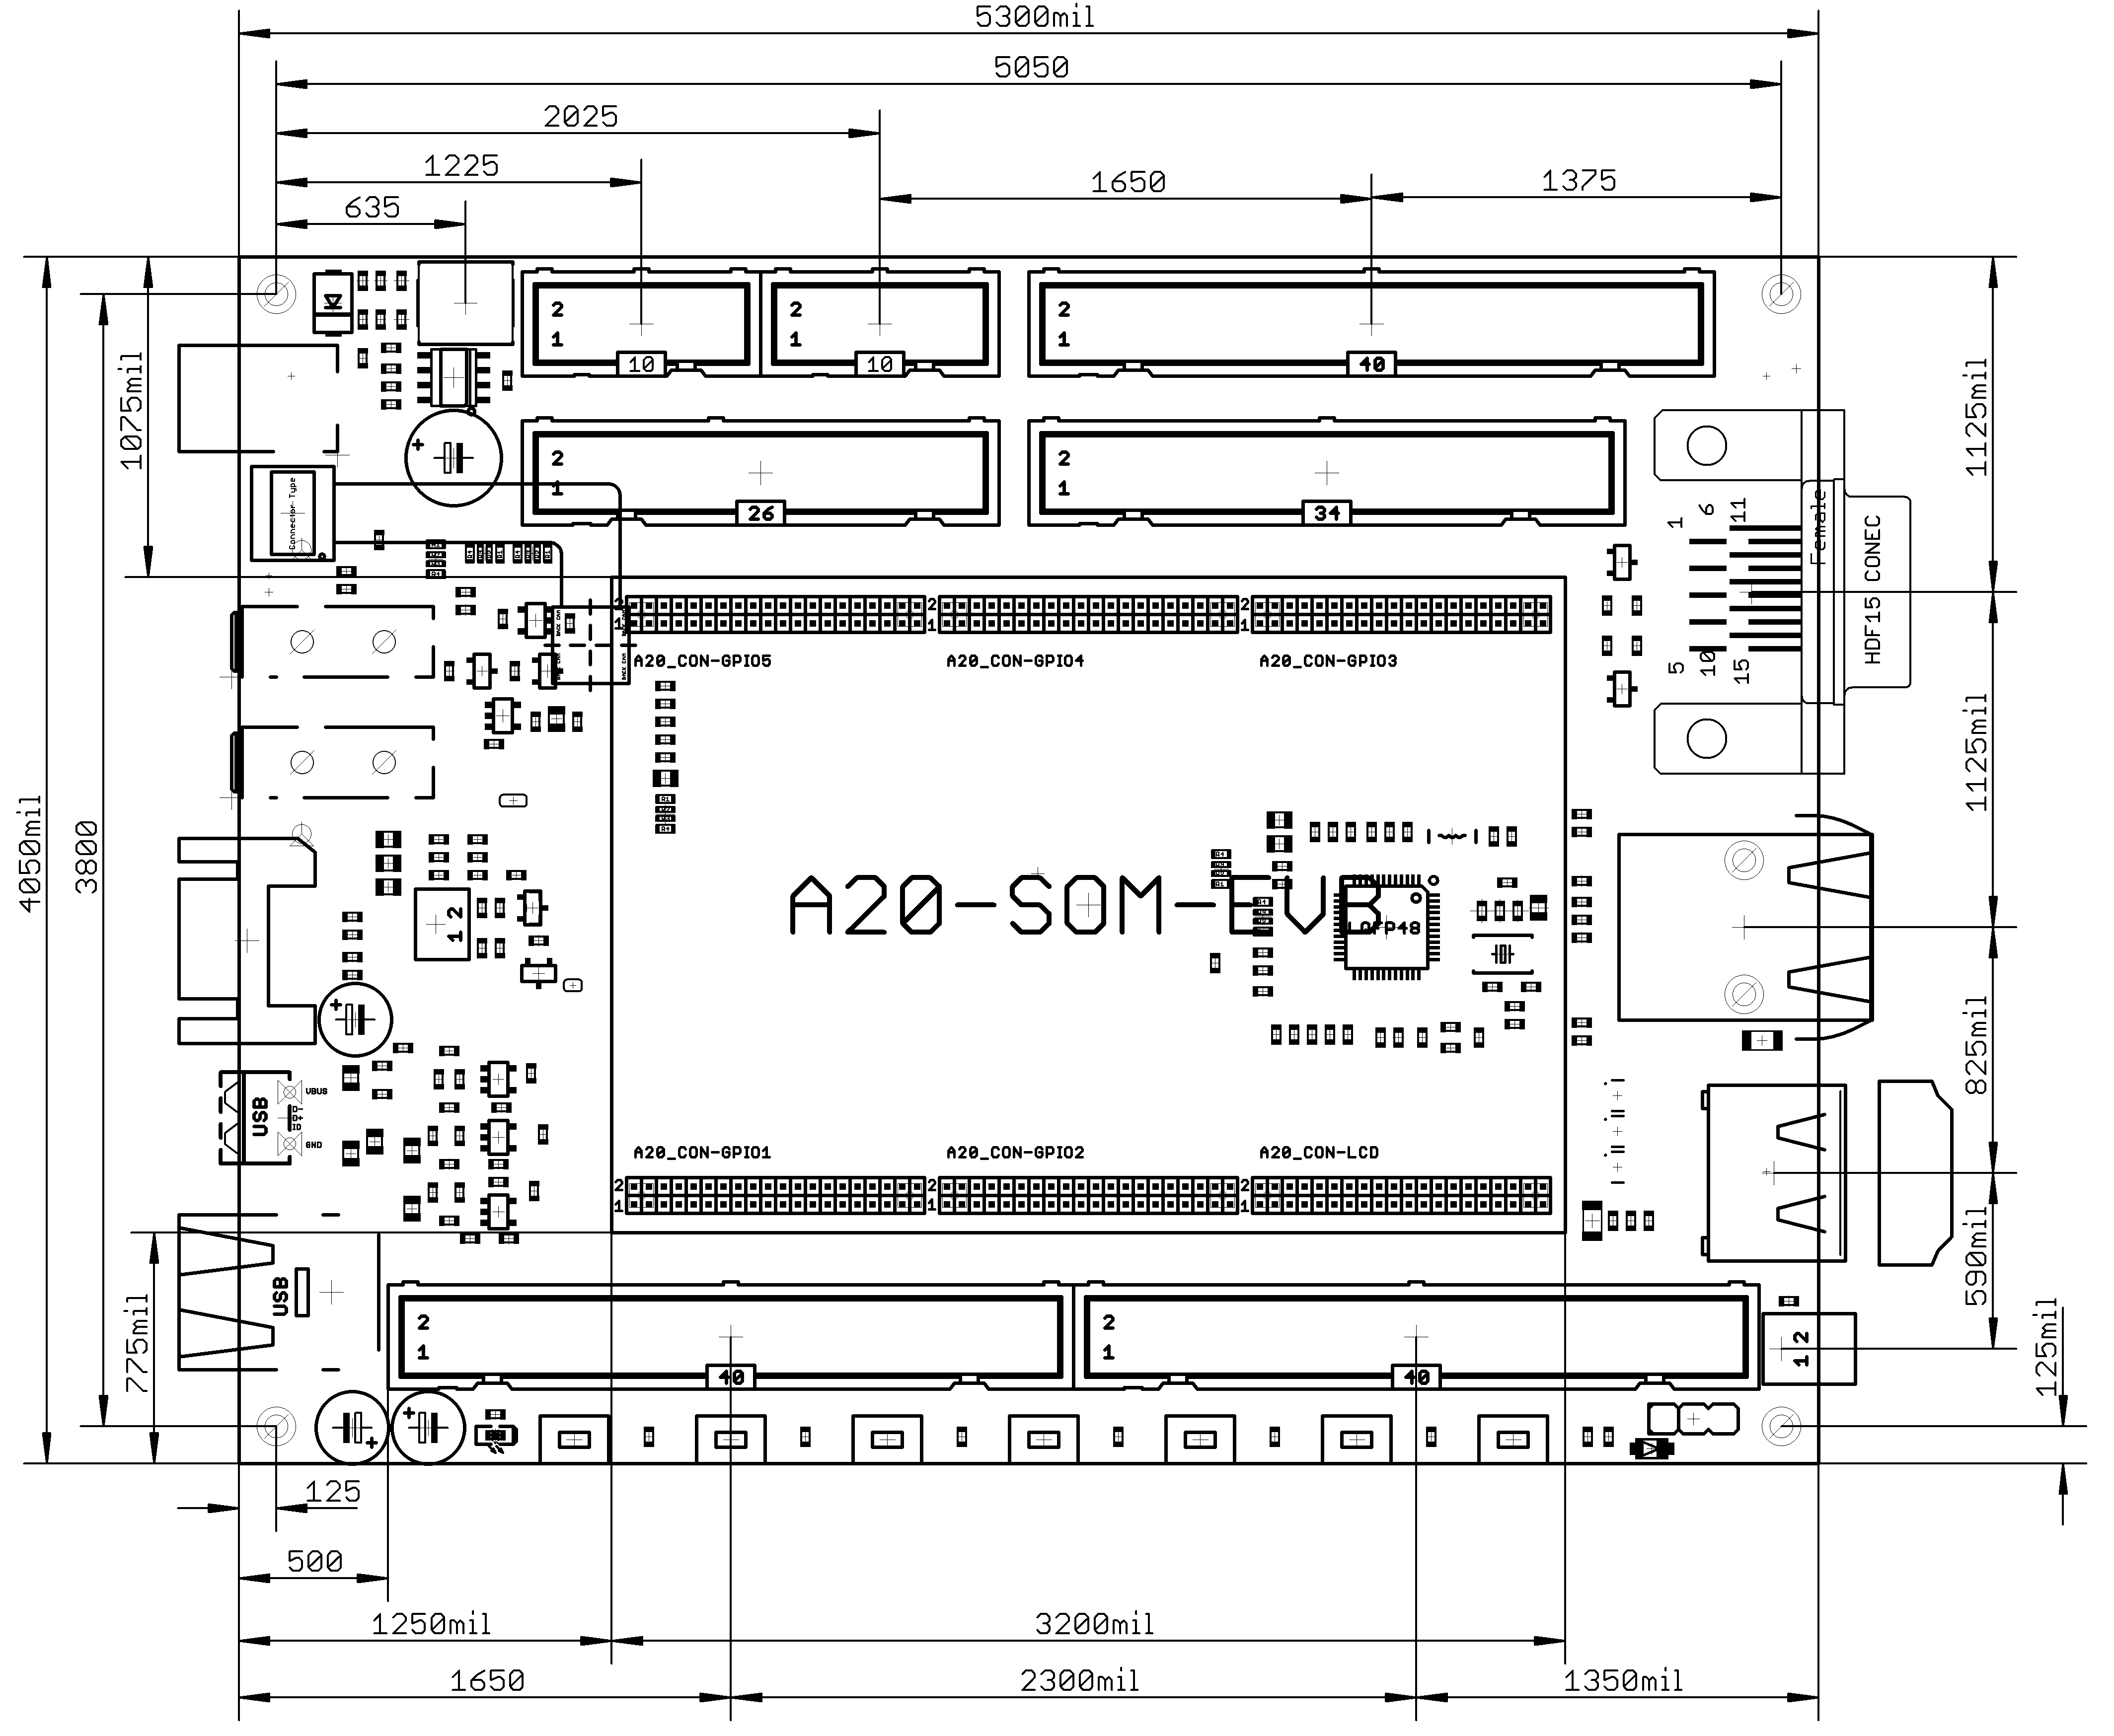 A20 Som Evb Open Source Hardware Board Electronic Usb To Dmx512 Interface Circuit Design Program Kicad